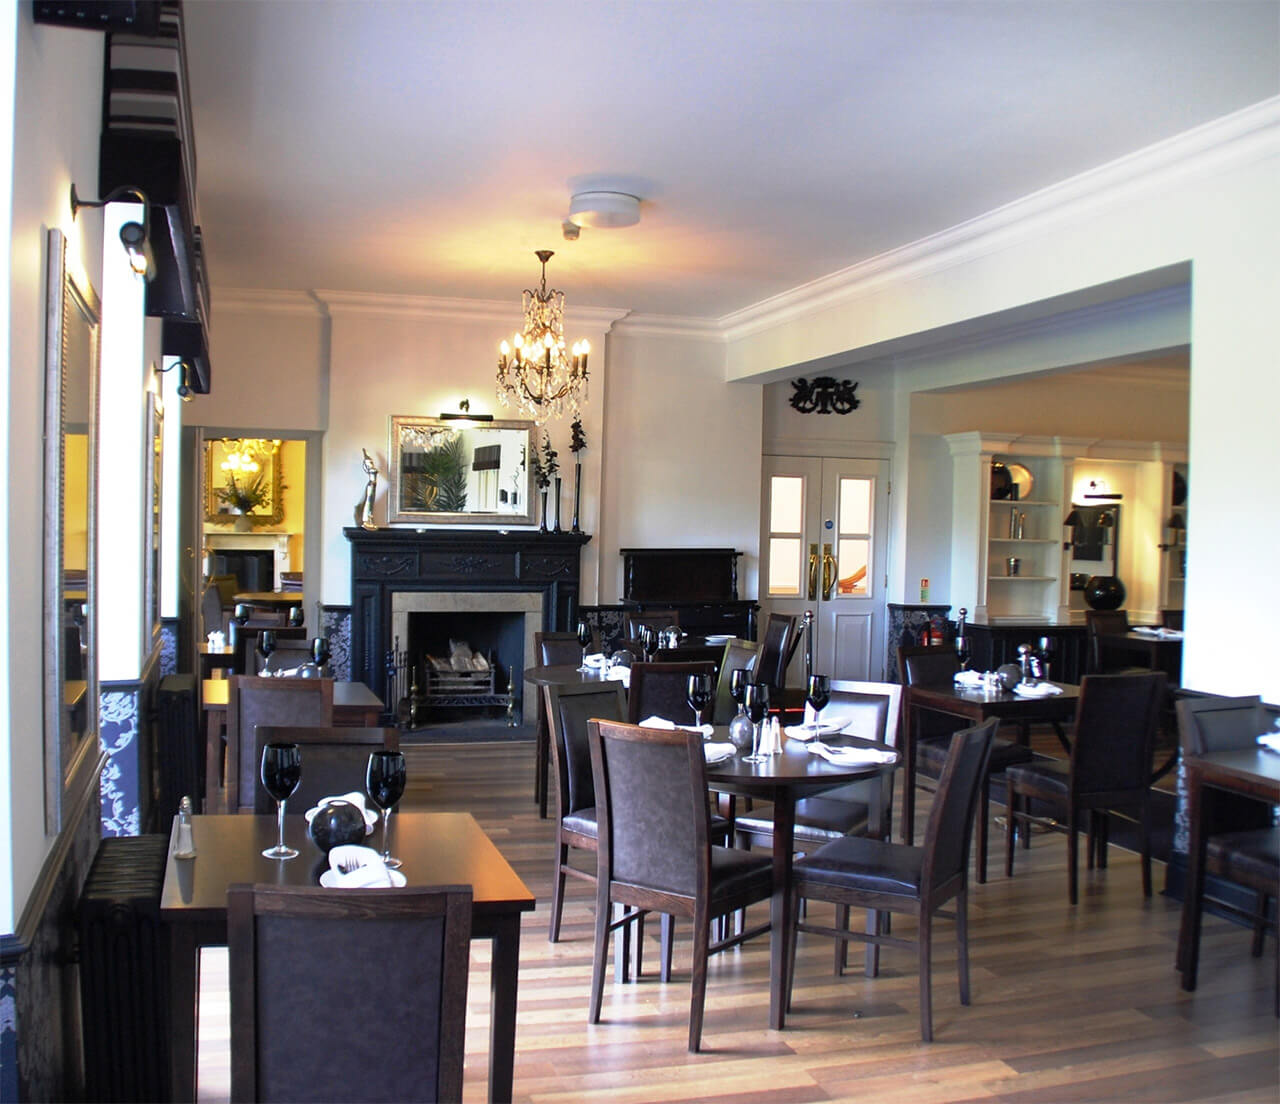 Pictures Of Rooms At The Craiglands Hotel